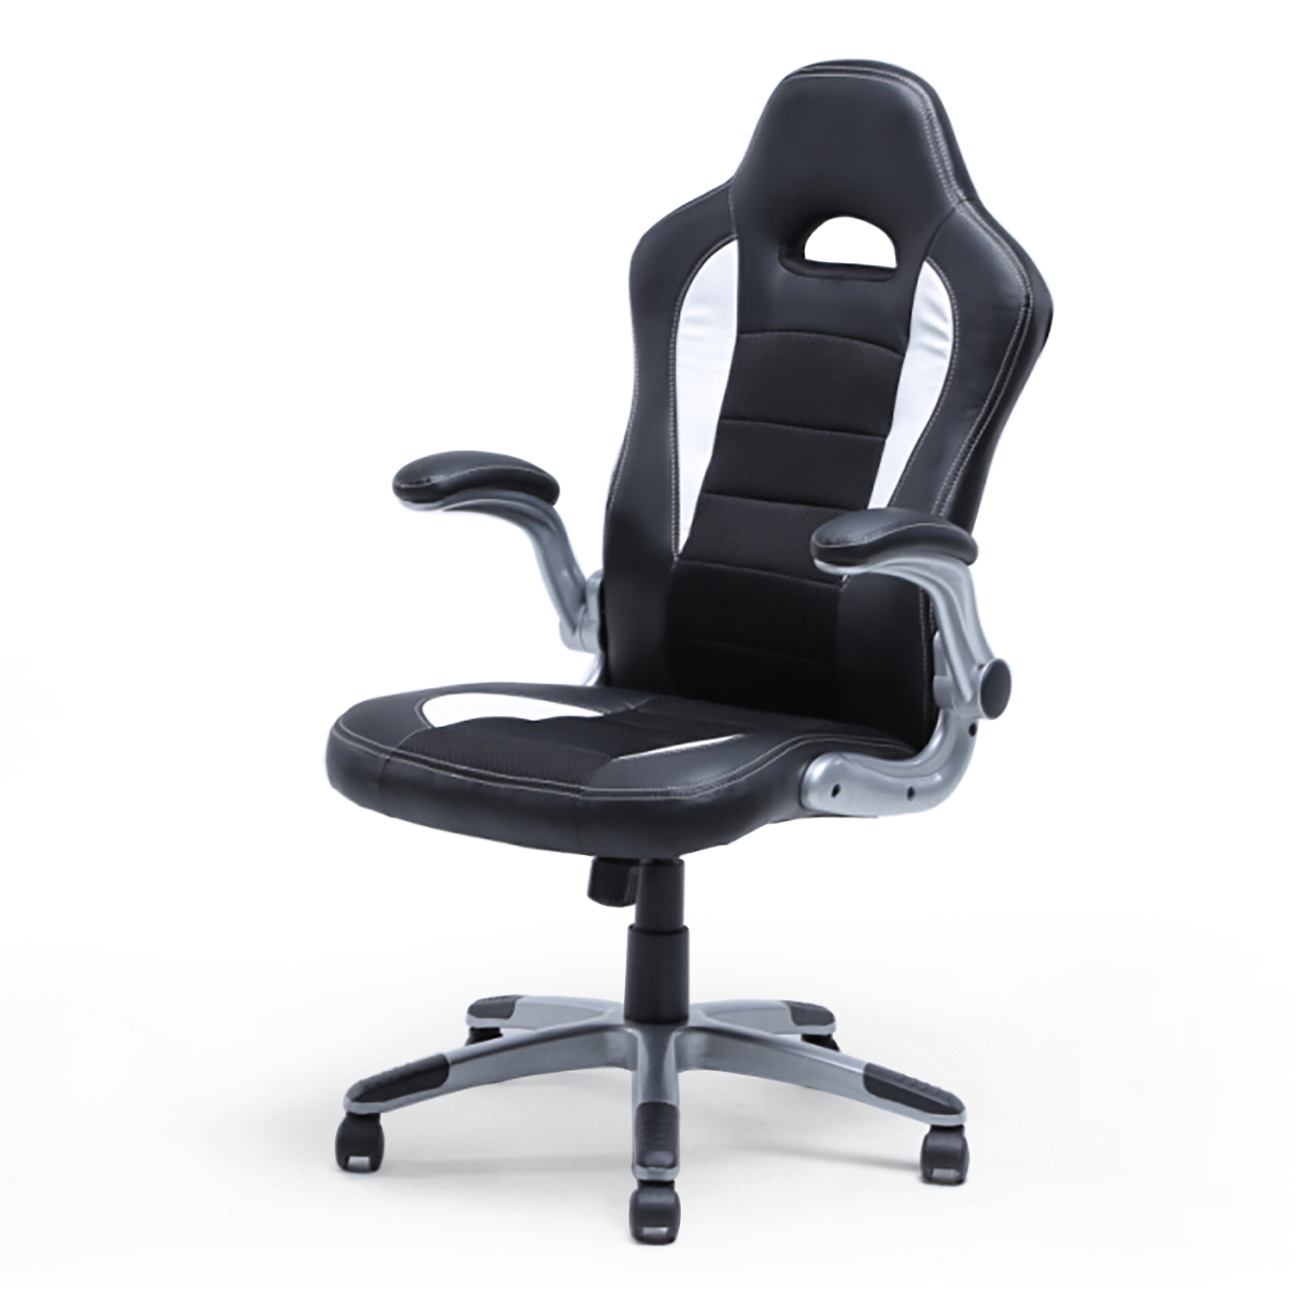 high quality office chairs ergonomic side with arms racing chair bucket seat back gaming